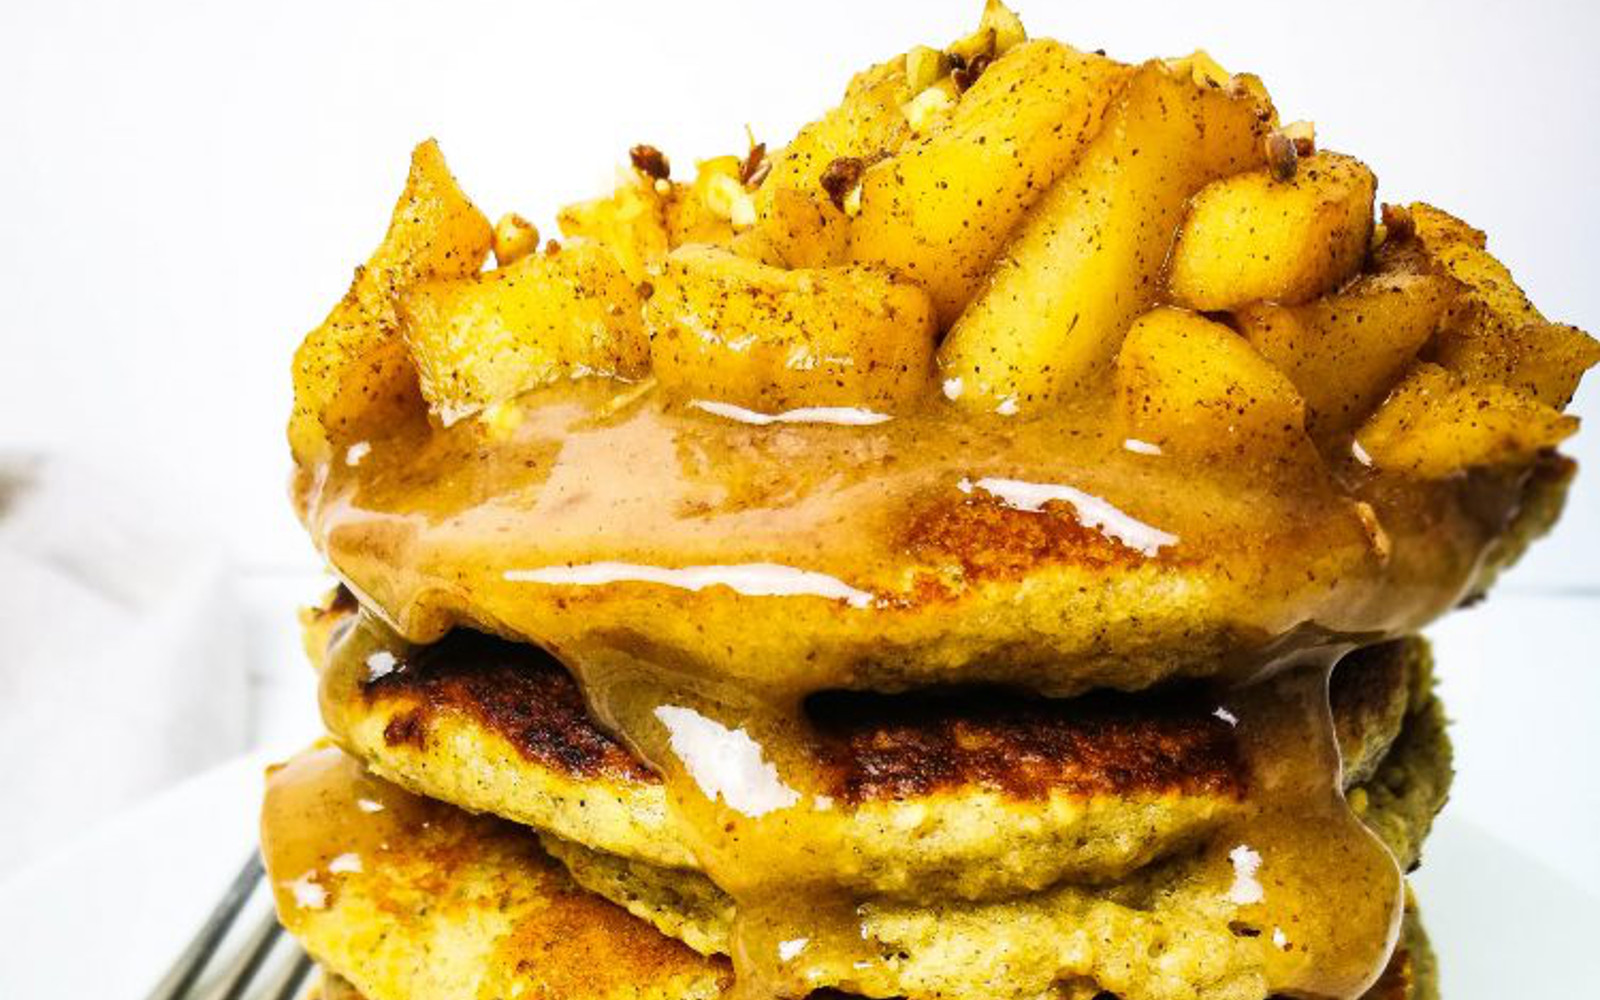 Vegan gluten-free Toffee Apple Pancakes with apple toffee topping